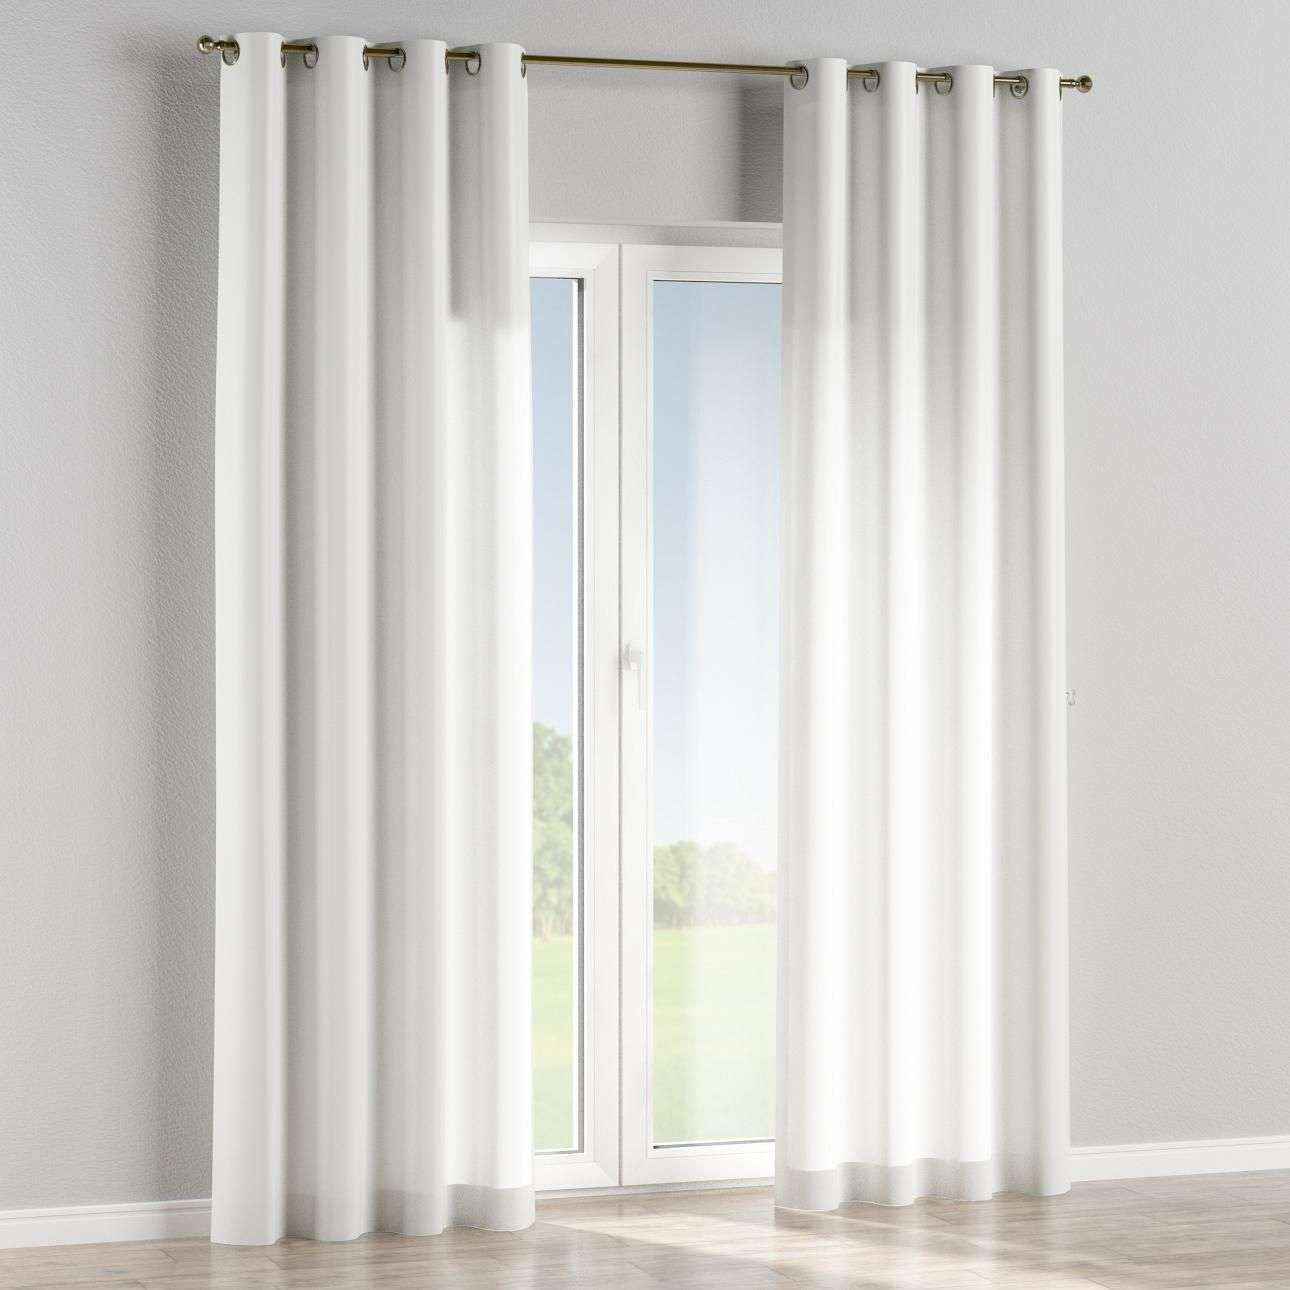 Eyelet curtains in collection SALE, fabric: 137-26